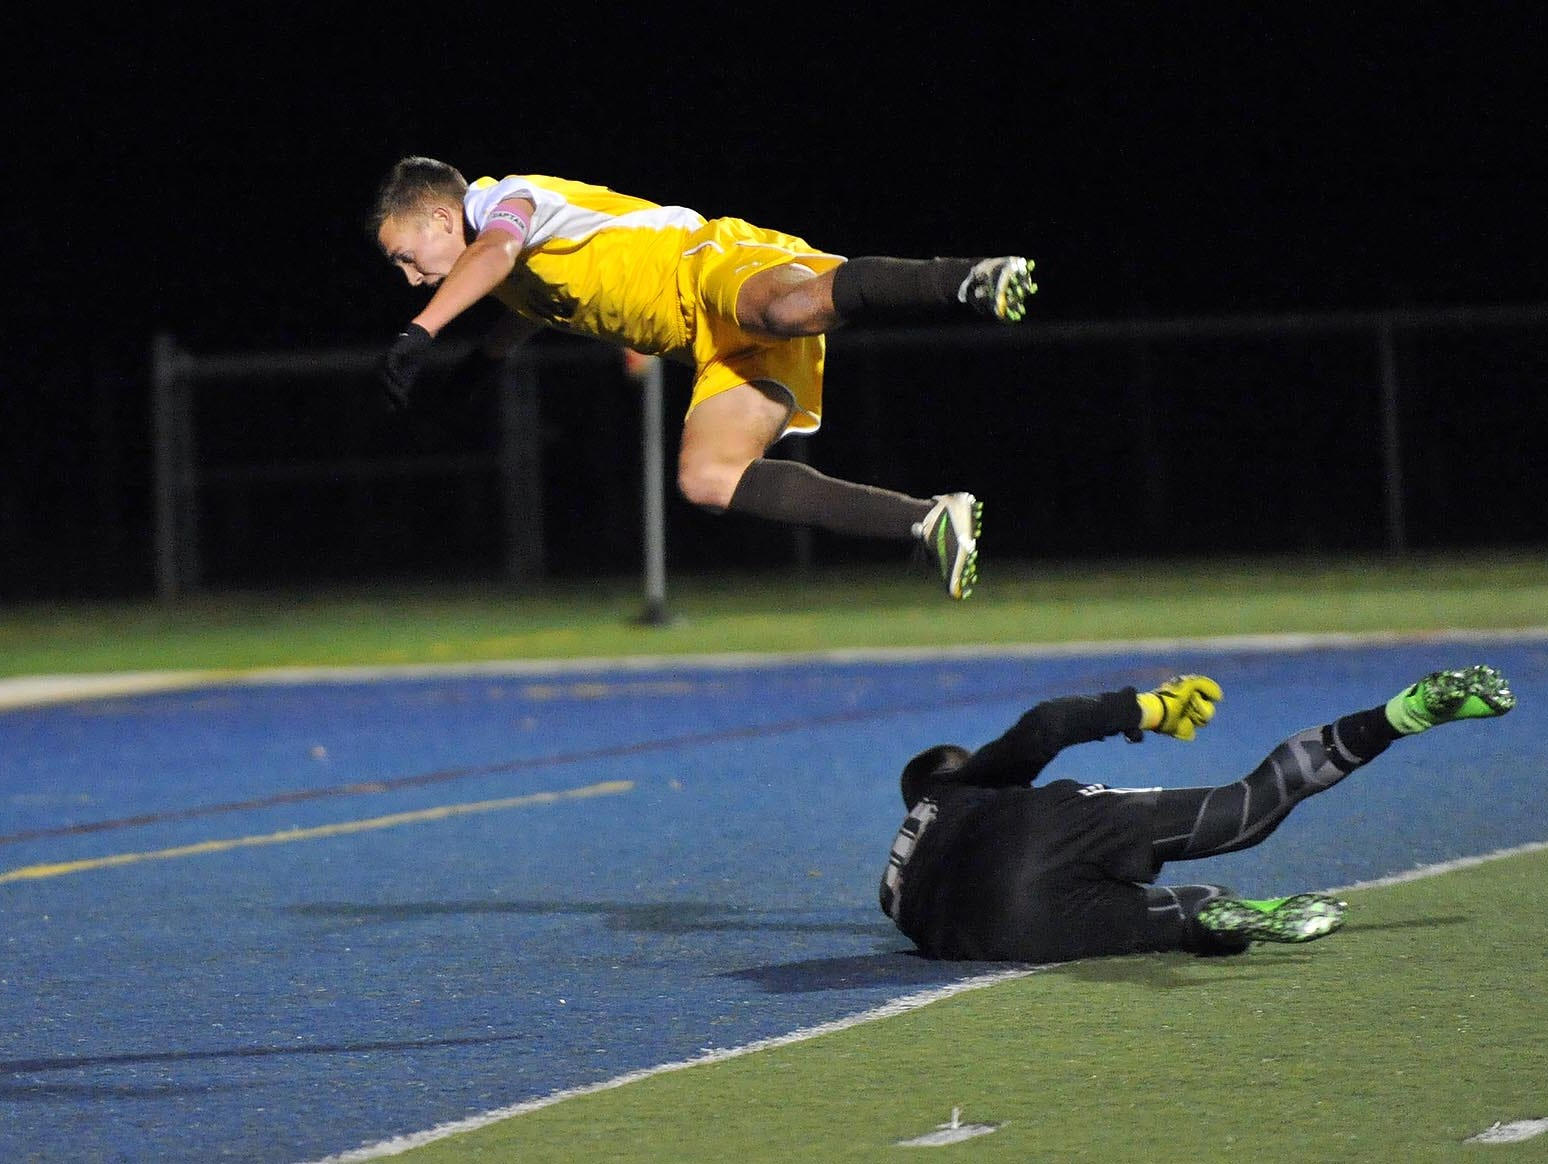 Delran's Michael Strohlein (left) is airborne after colliding with Holmdel goalkeeper Tyler Marchiano (right), while shooting in their Group 2 boys' soccer semifinal, Tuesday, Nov. 17 in Buena Vista.